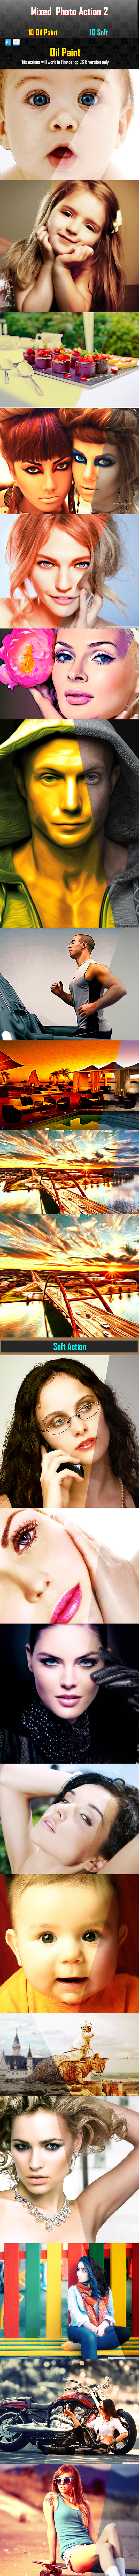 Mixed Photo Action 2 - Photo Effects Actions